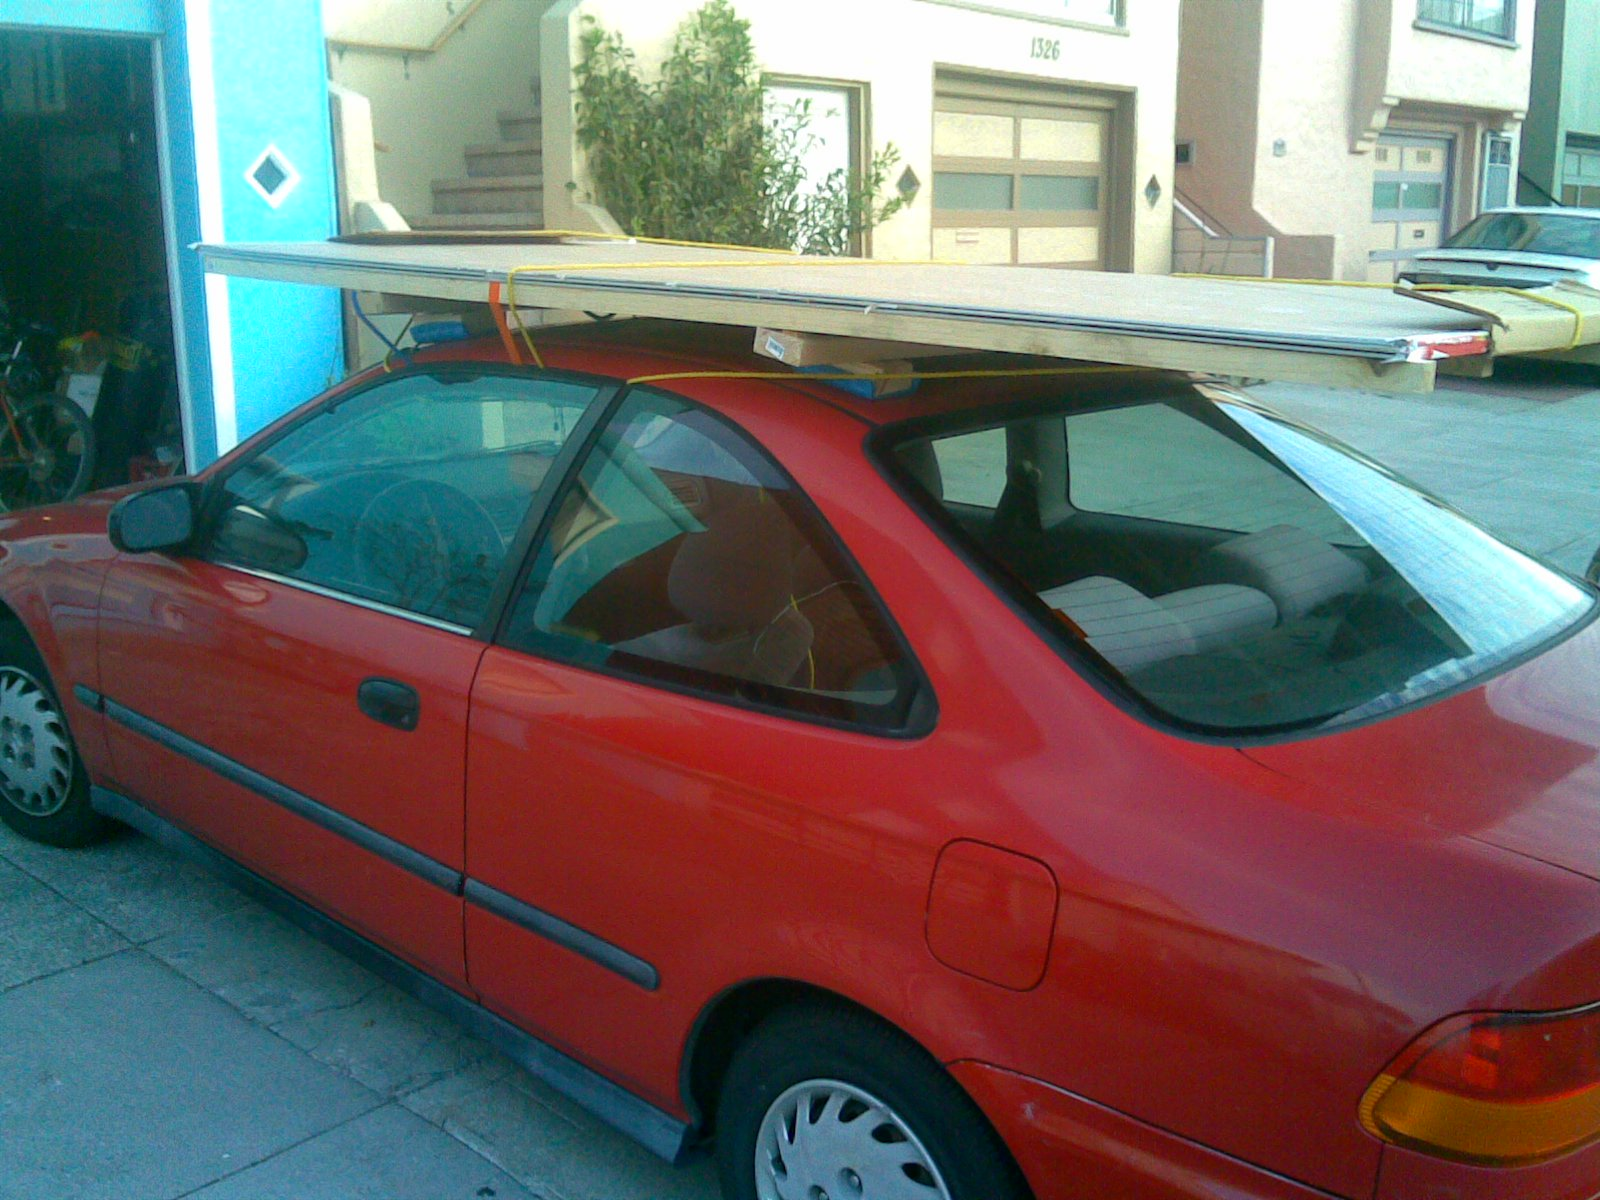 Drywall and Plywood Cartop Carrier / Roof Rack